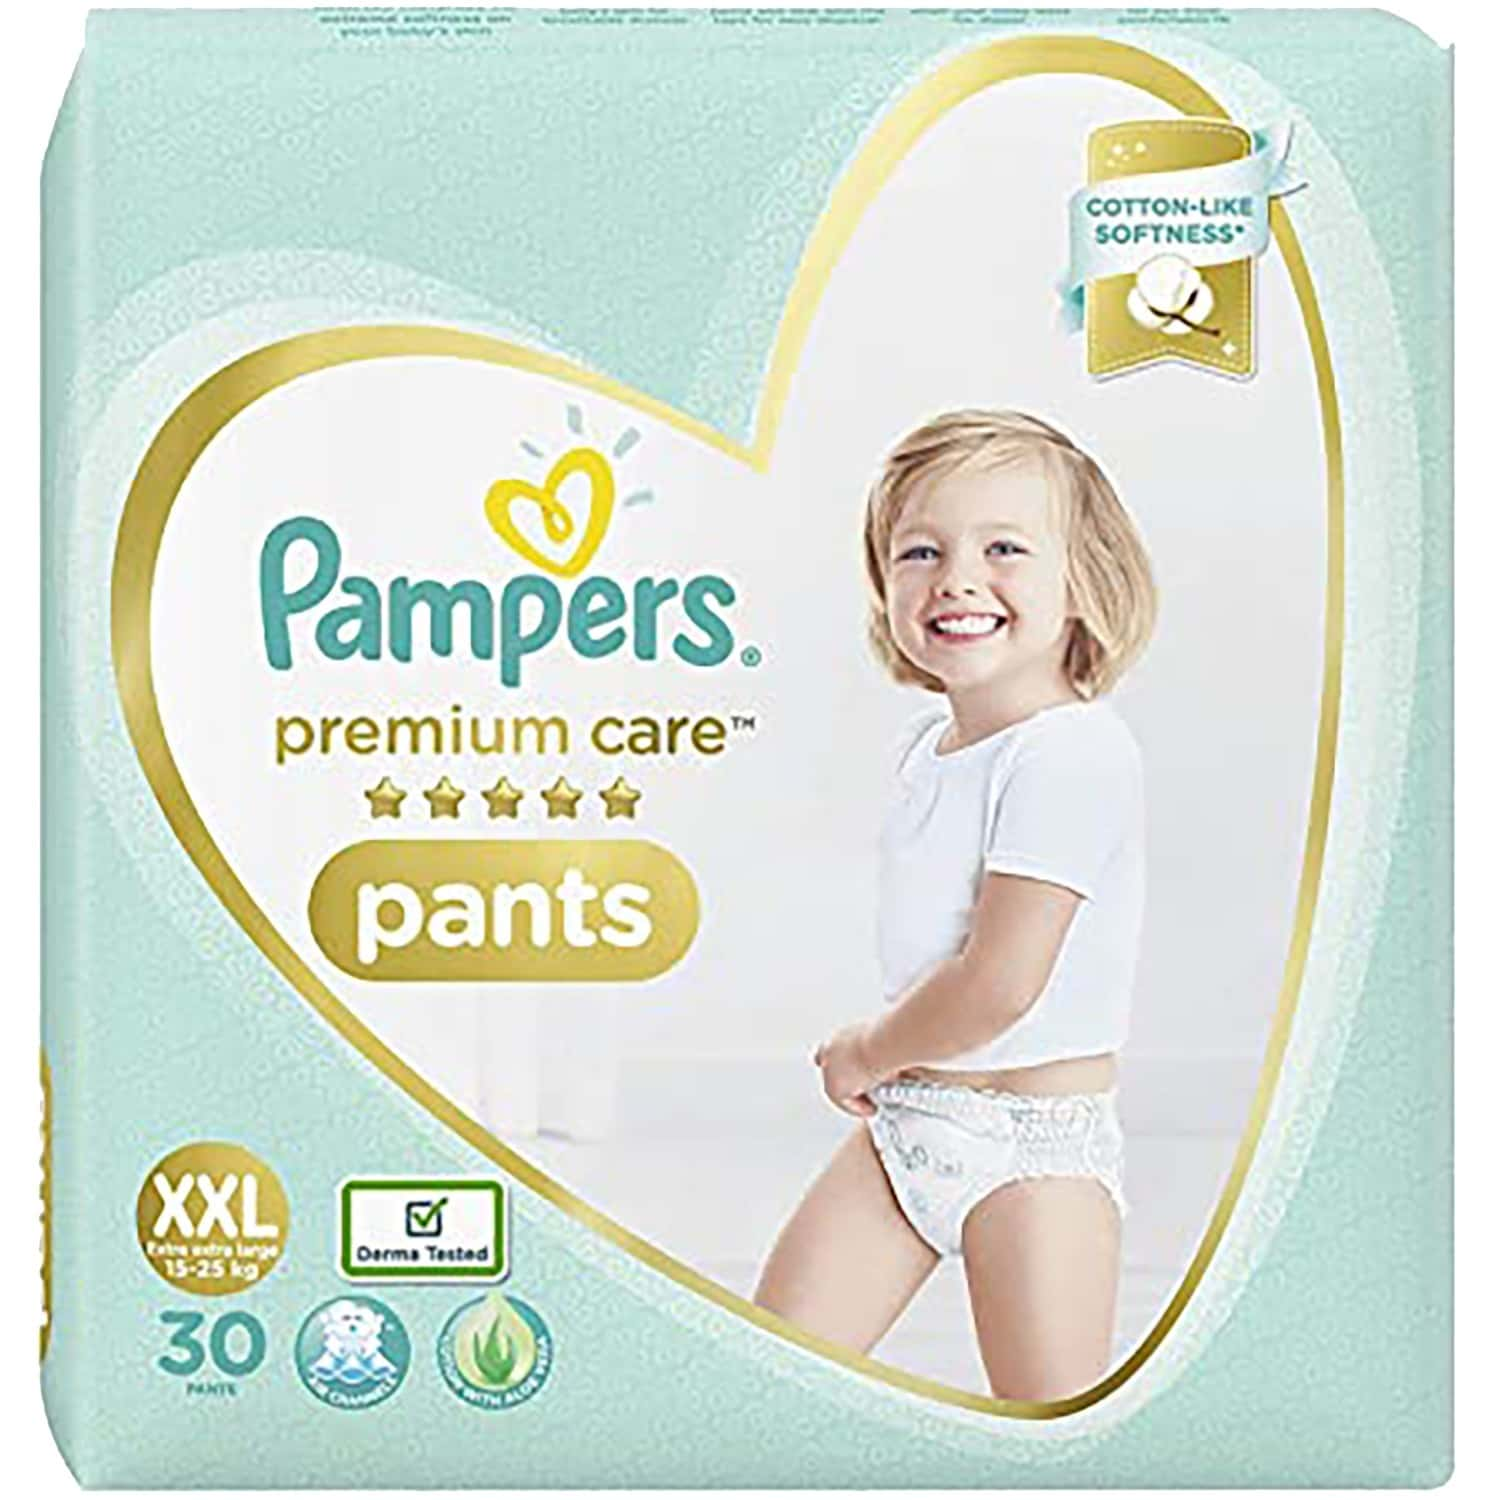 Pampers Premium Care Pants Diapers, Xx-large - 30 Count